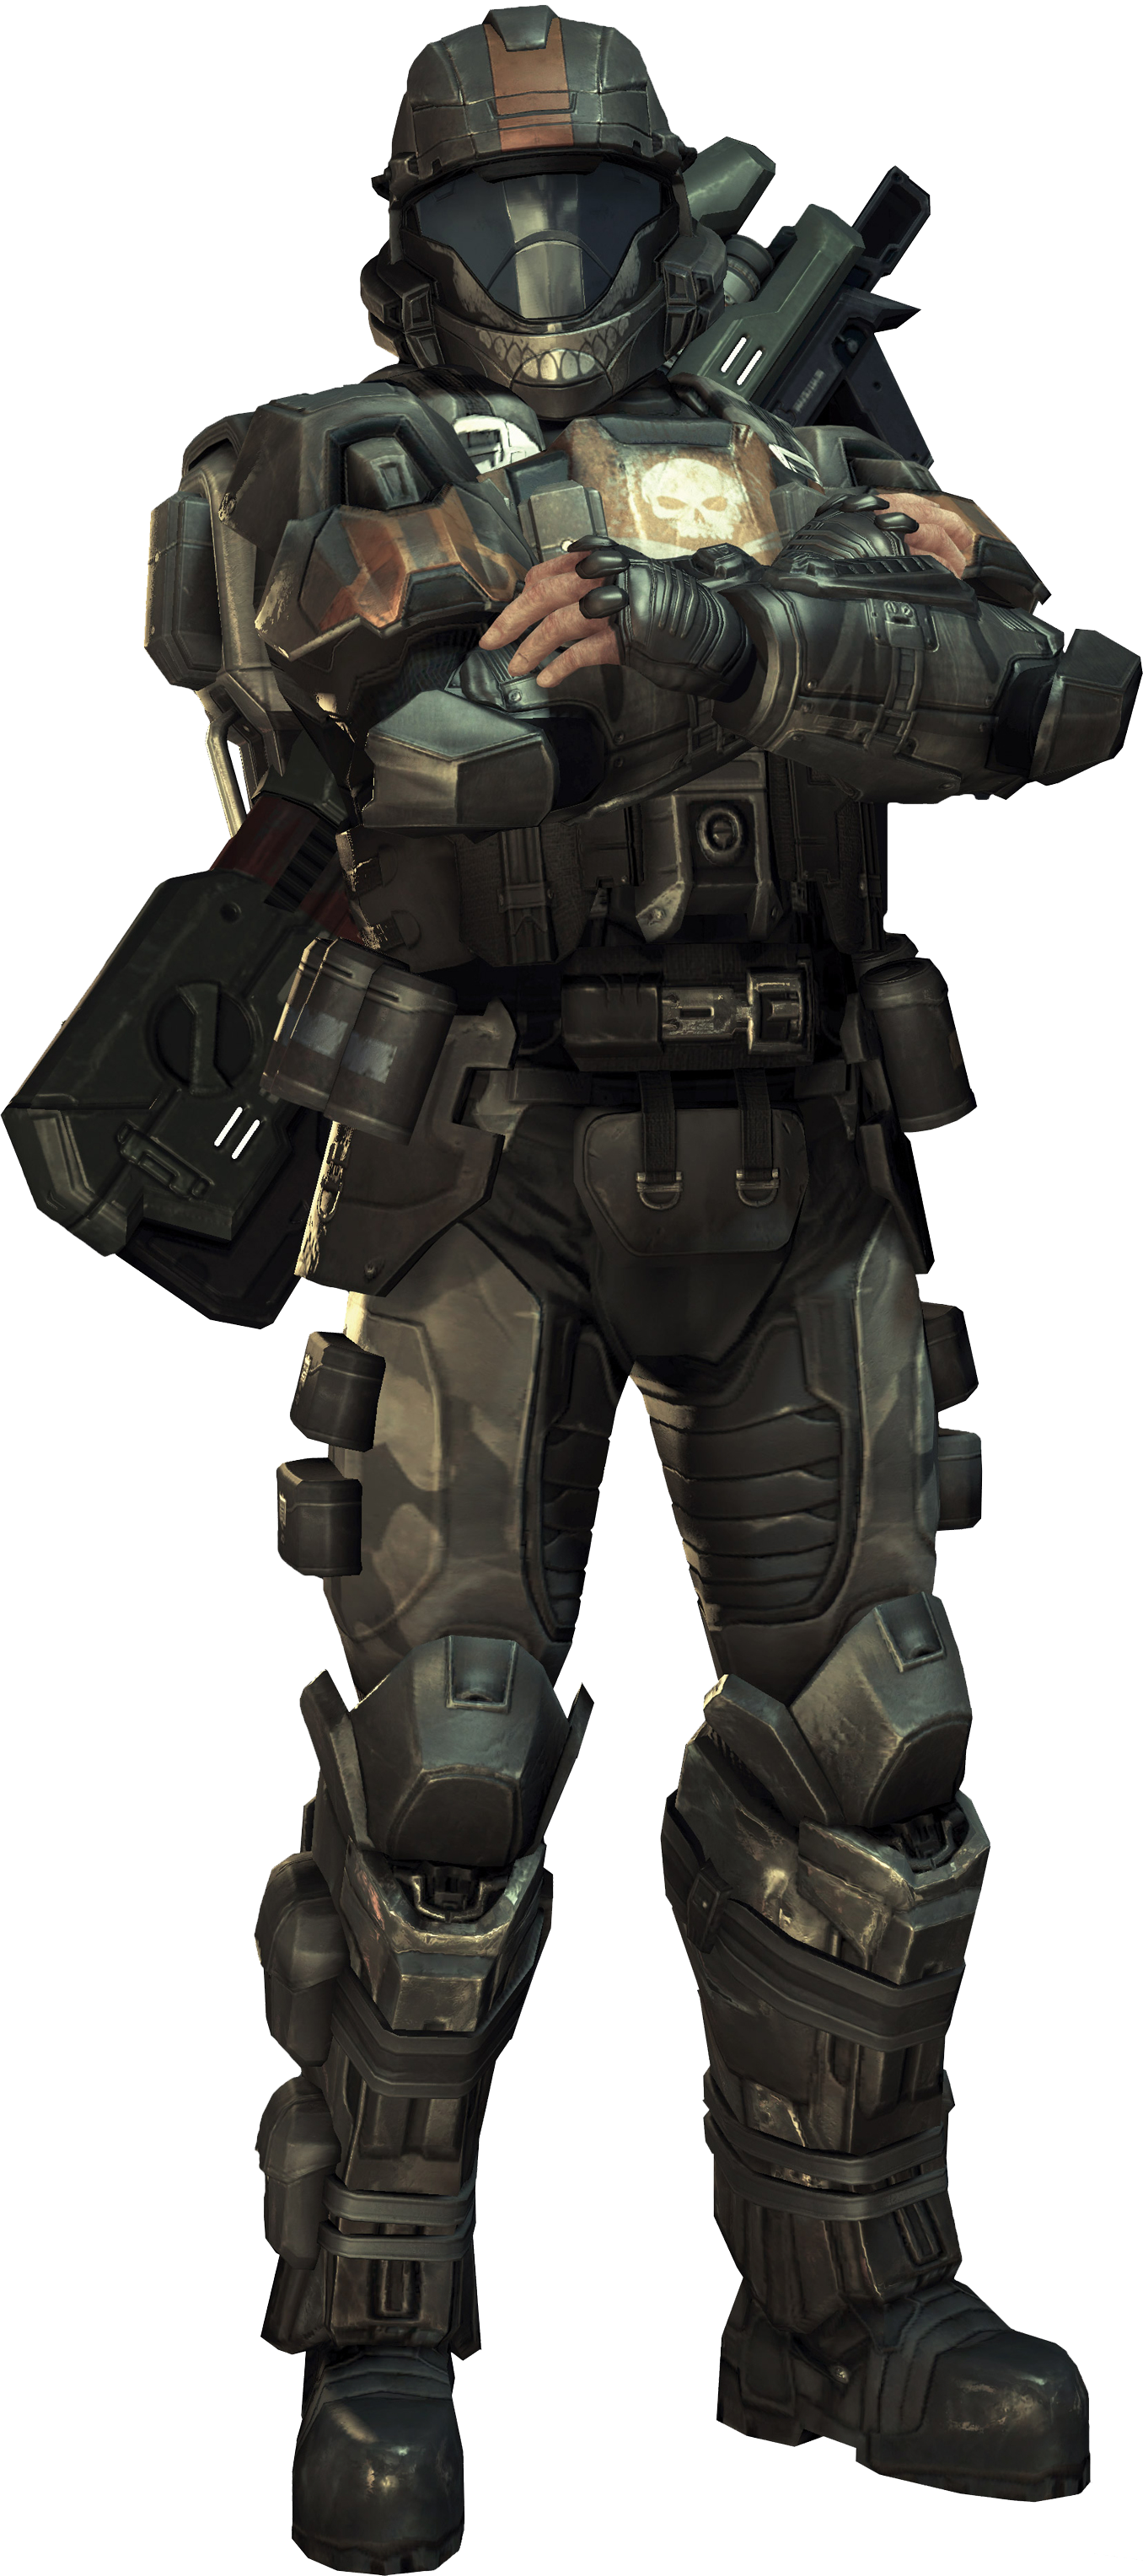 Odst drawing armor. Halo dutch art images